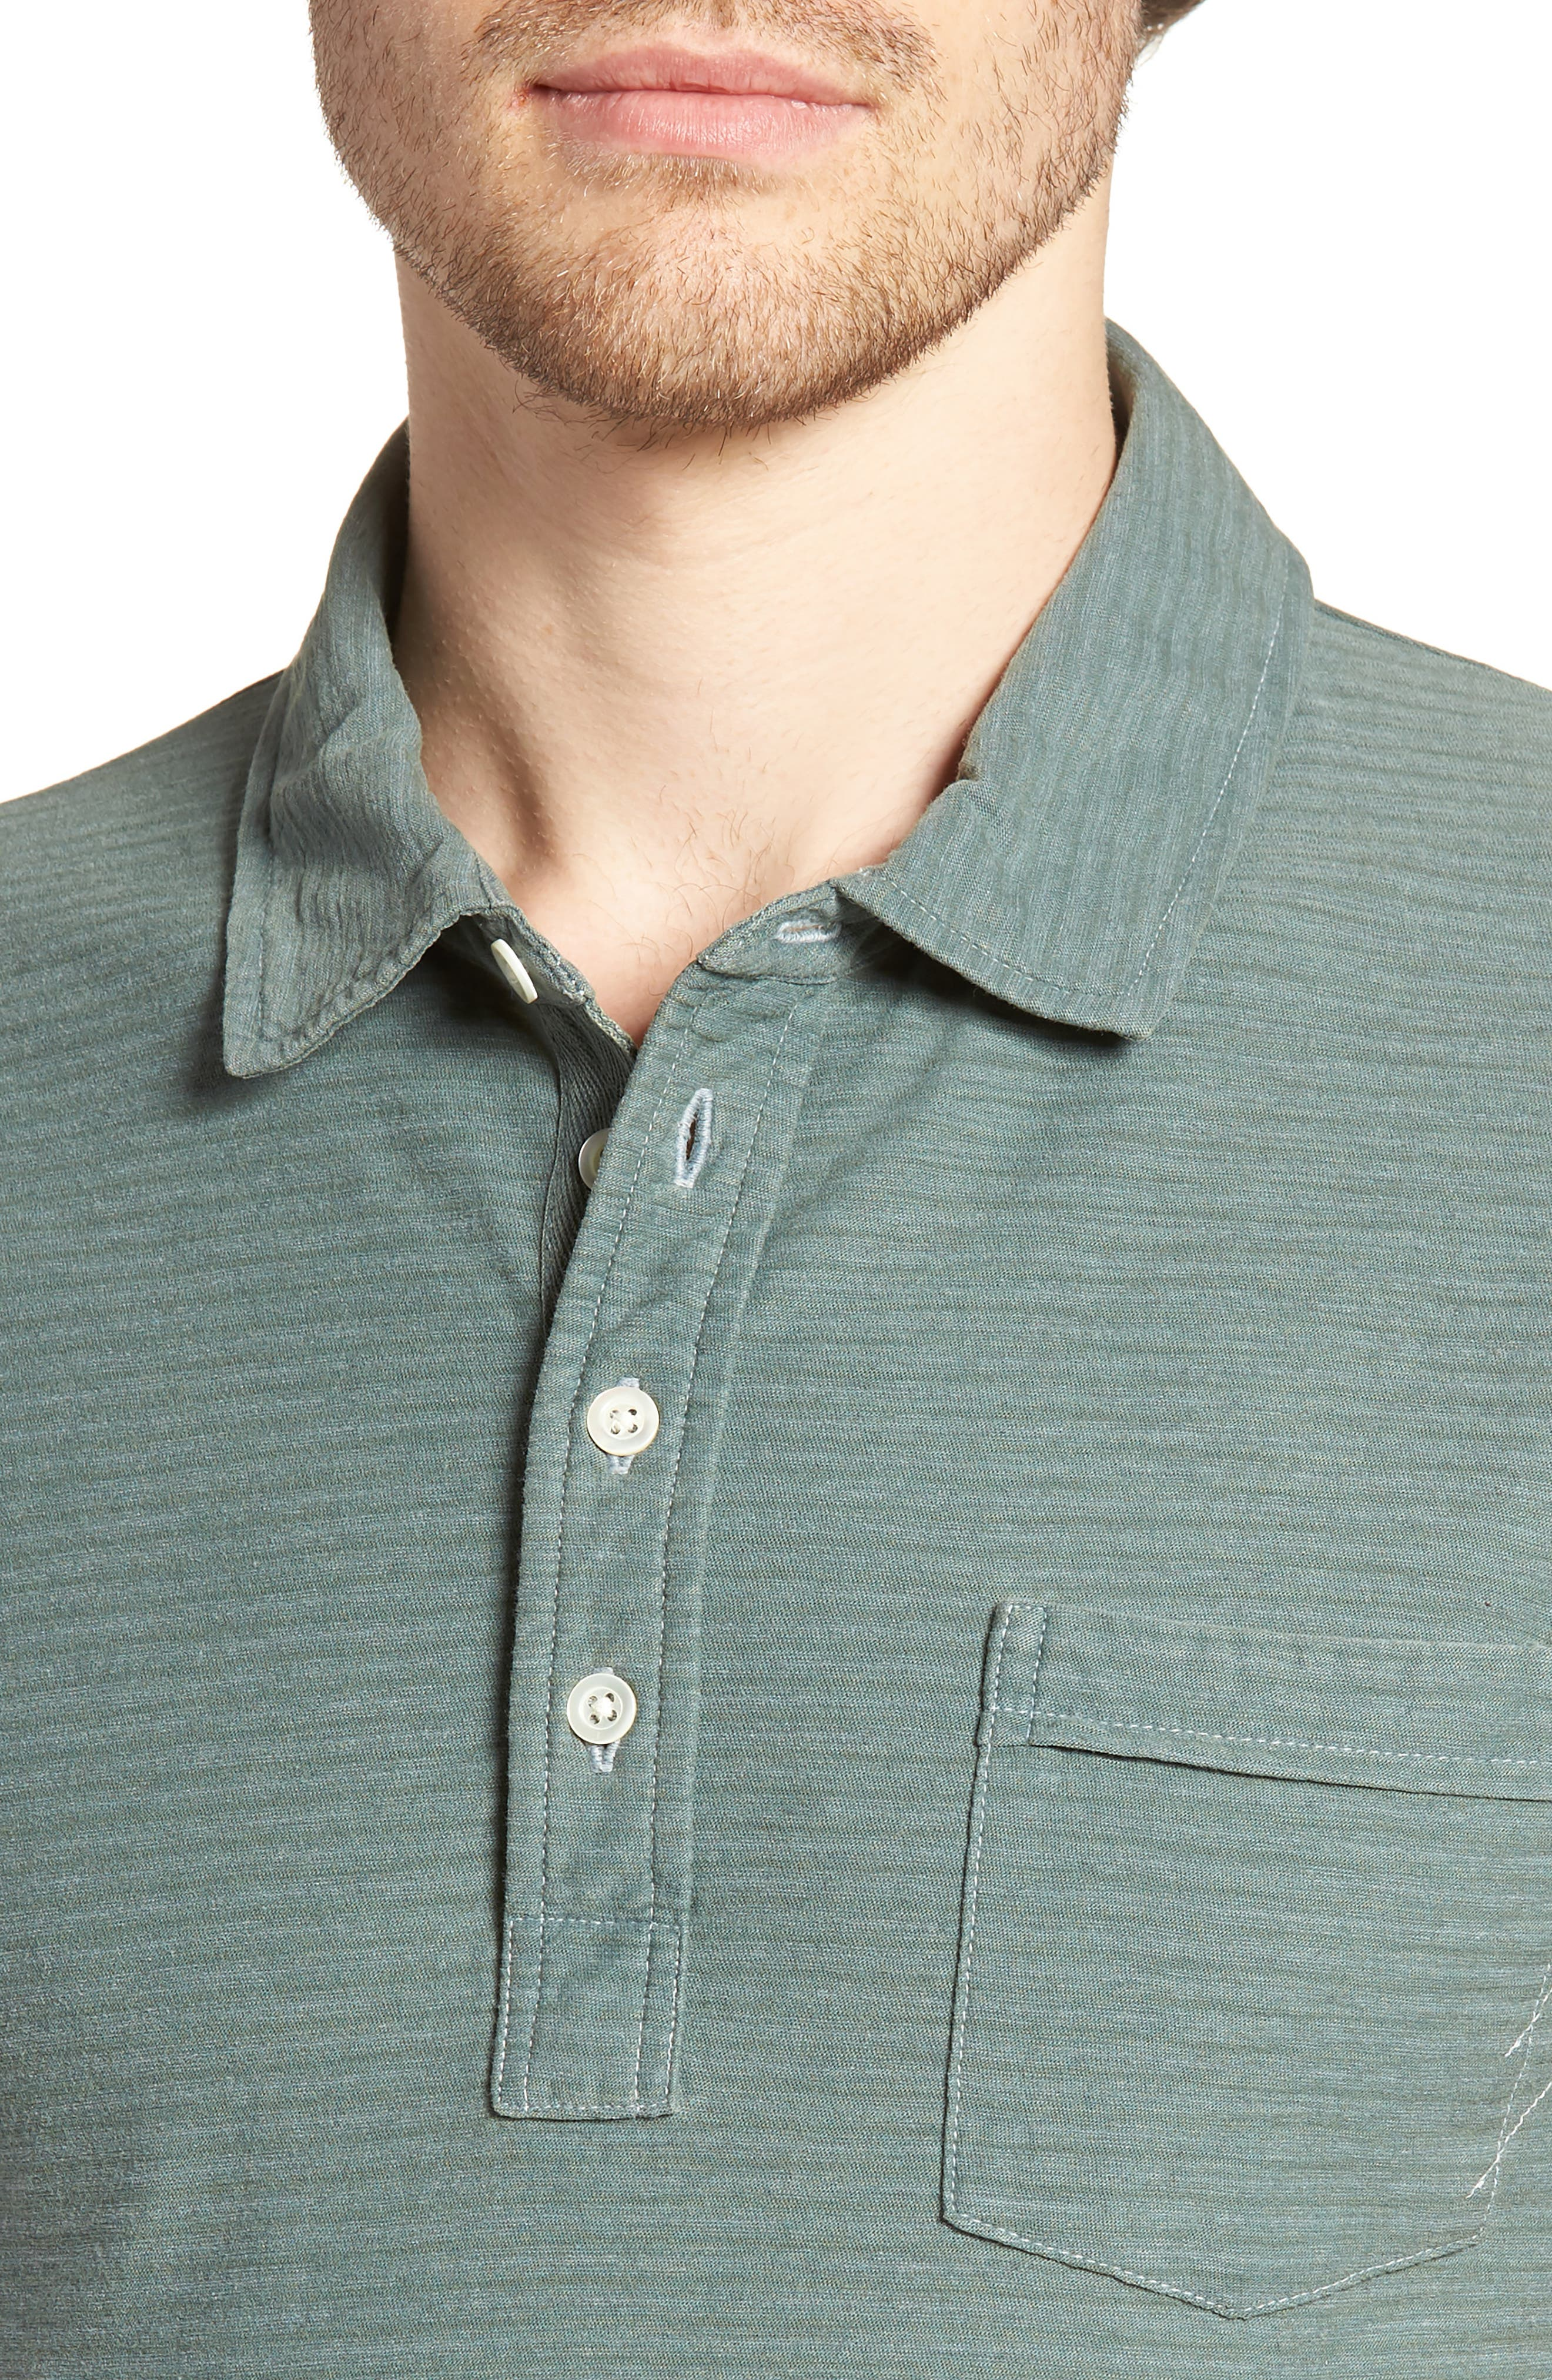 Pensacola Cotton Blend Polo Shirt,                             Alternate thumbnail 4, color,                             Sage